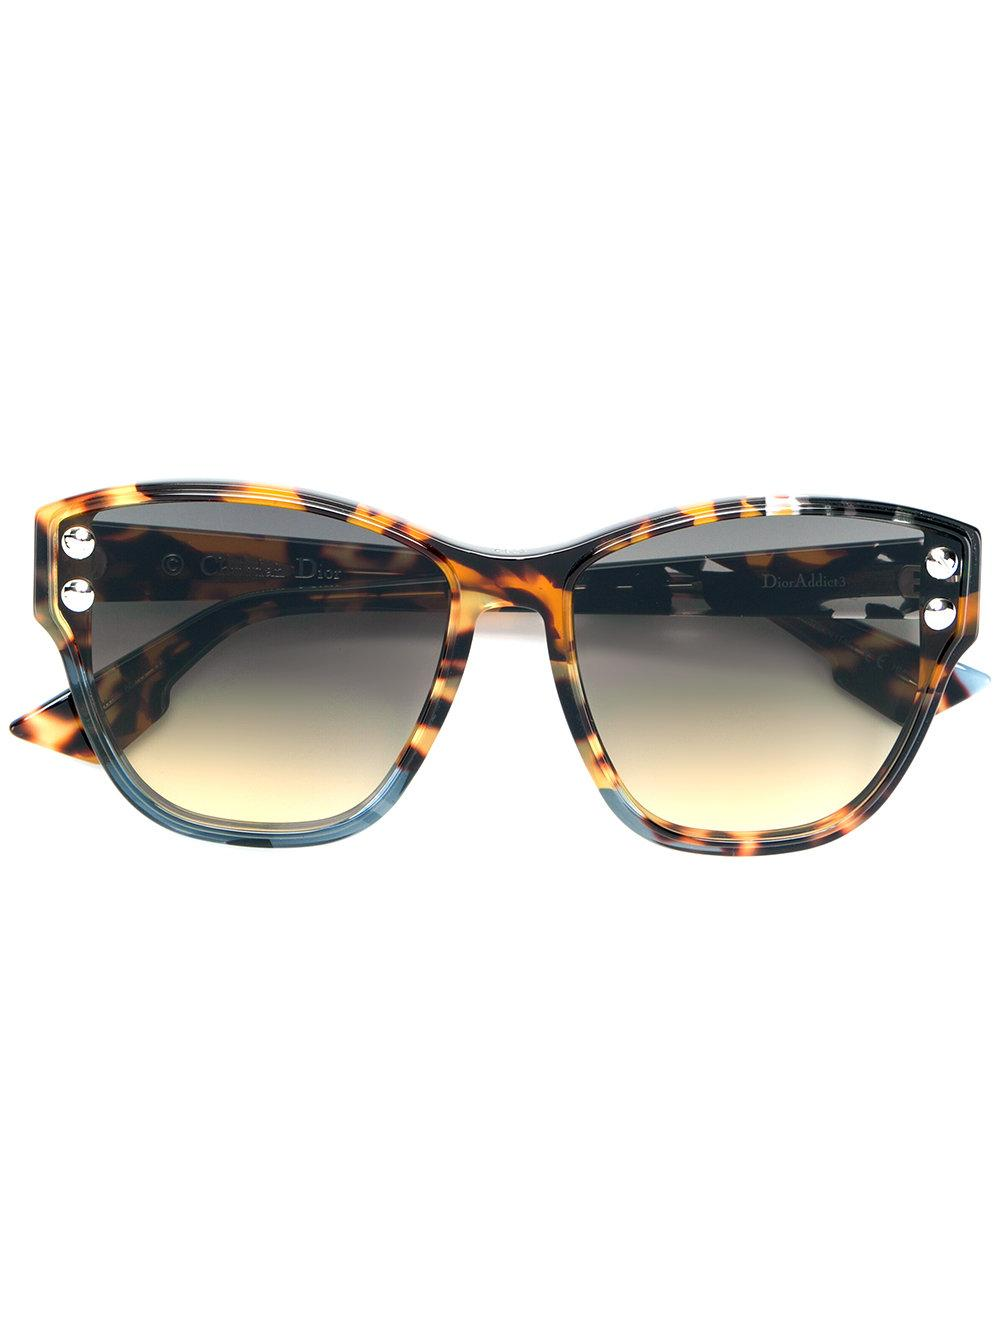 9ba05e0e42ec Dior Eyewear Oversized Sunglasses - Brown